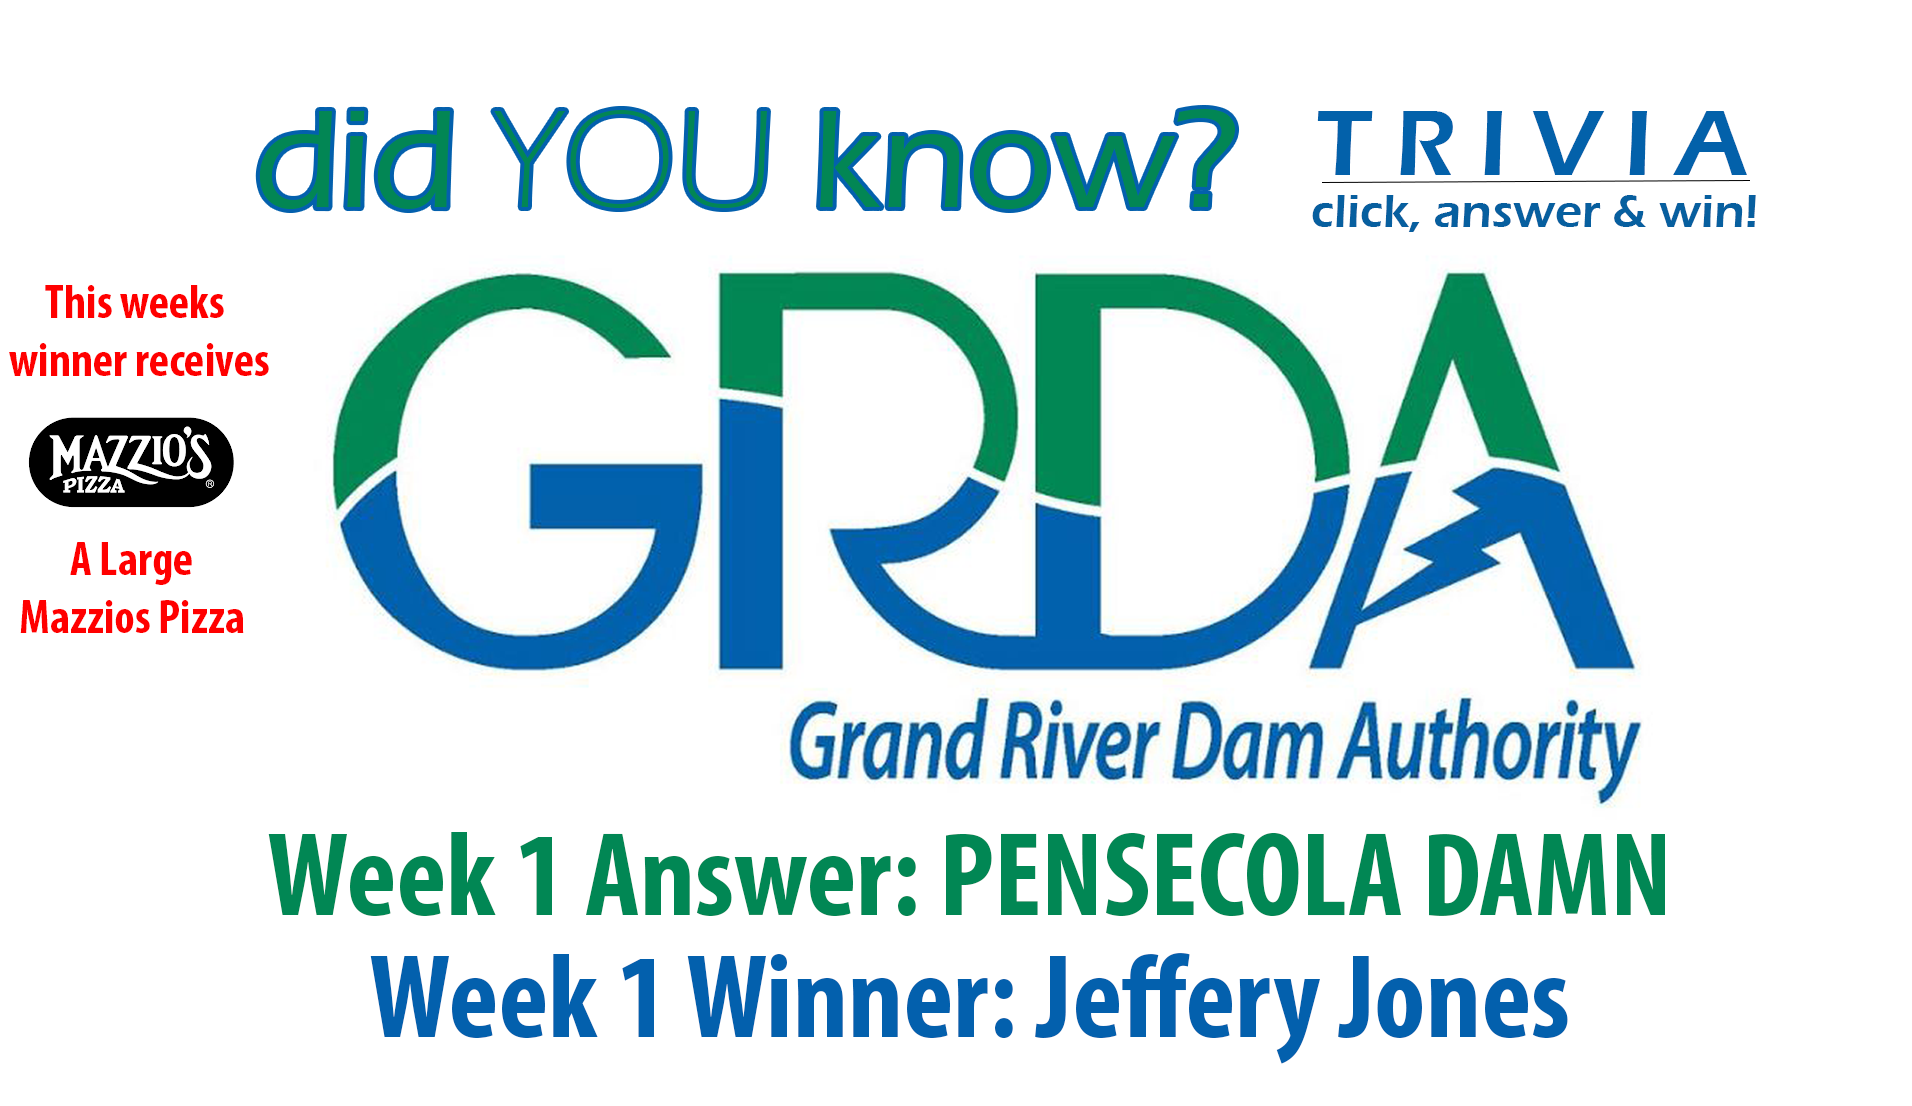 GRDA Did You Know Graphic V1 Wk 1 Winner Graphic.png